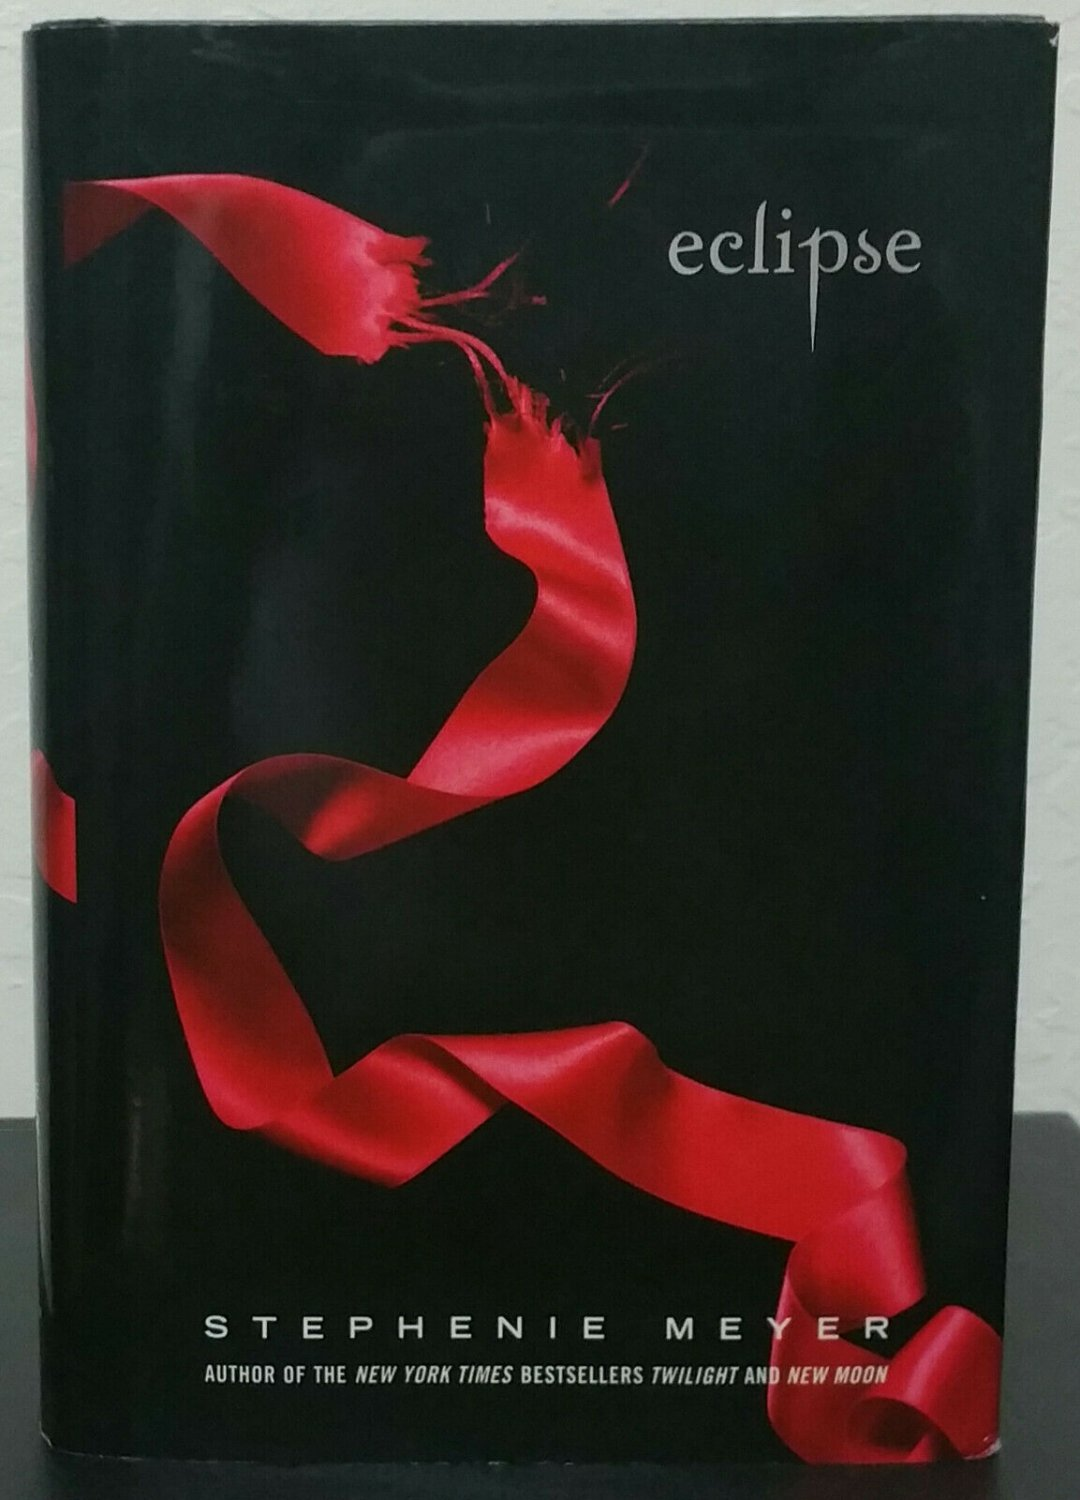 Eclipse by Stephenie Meyer - Signed 1st Hb. Edn.